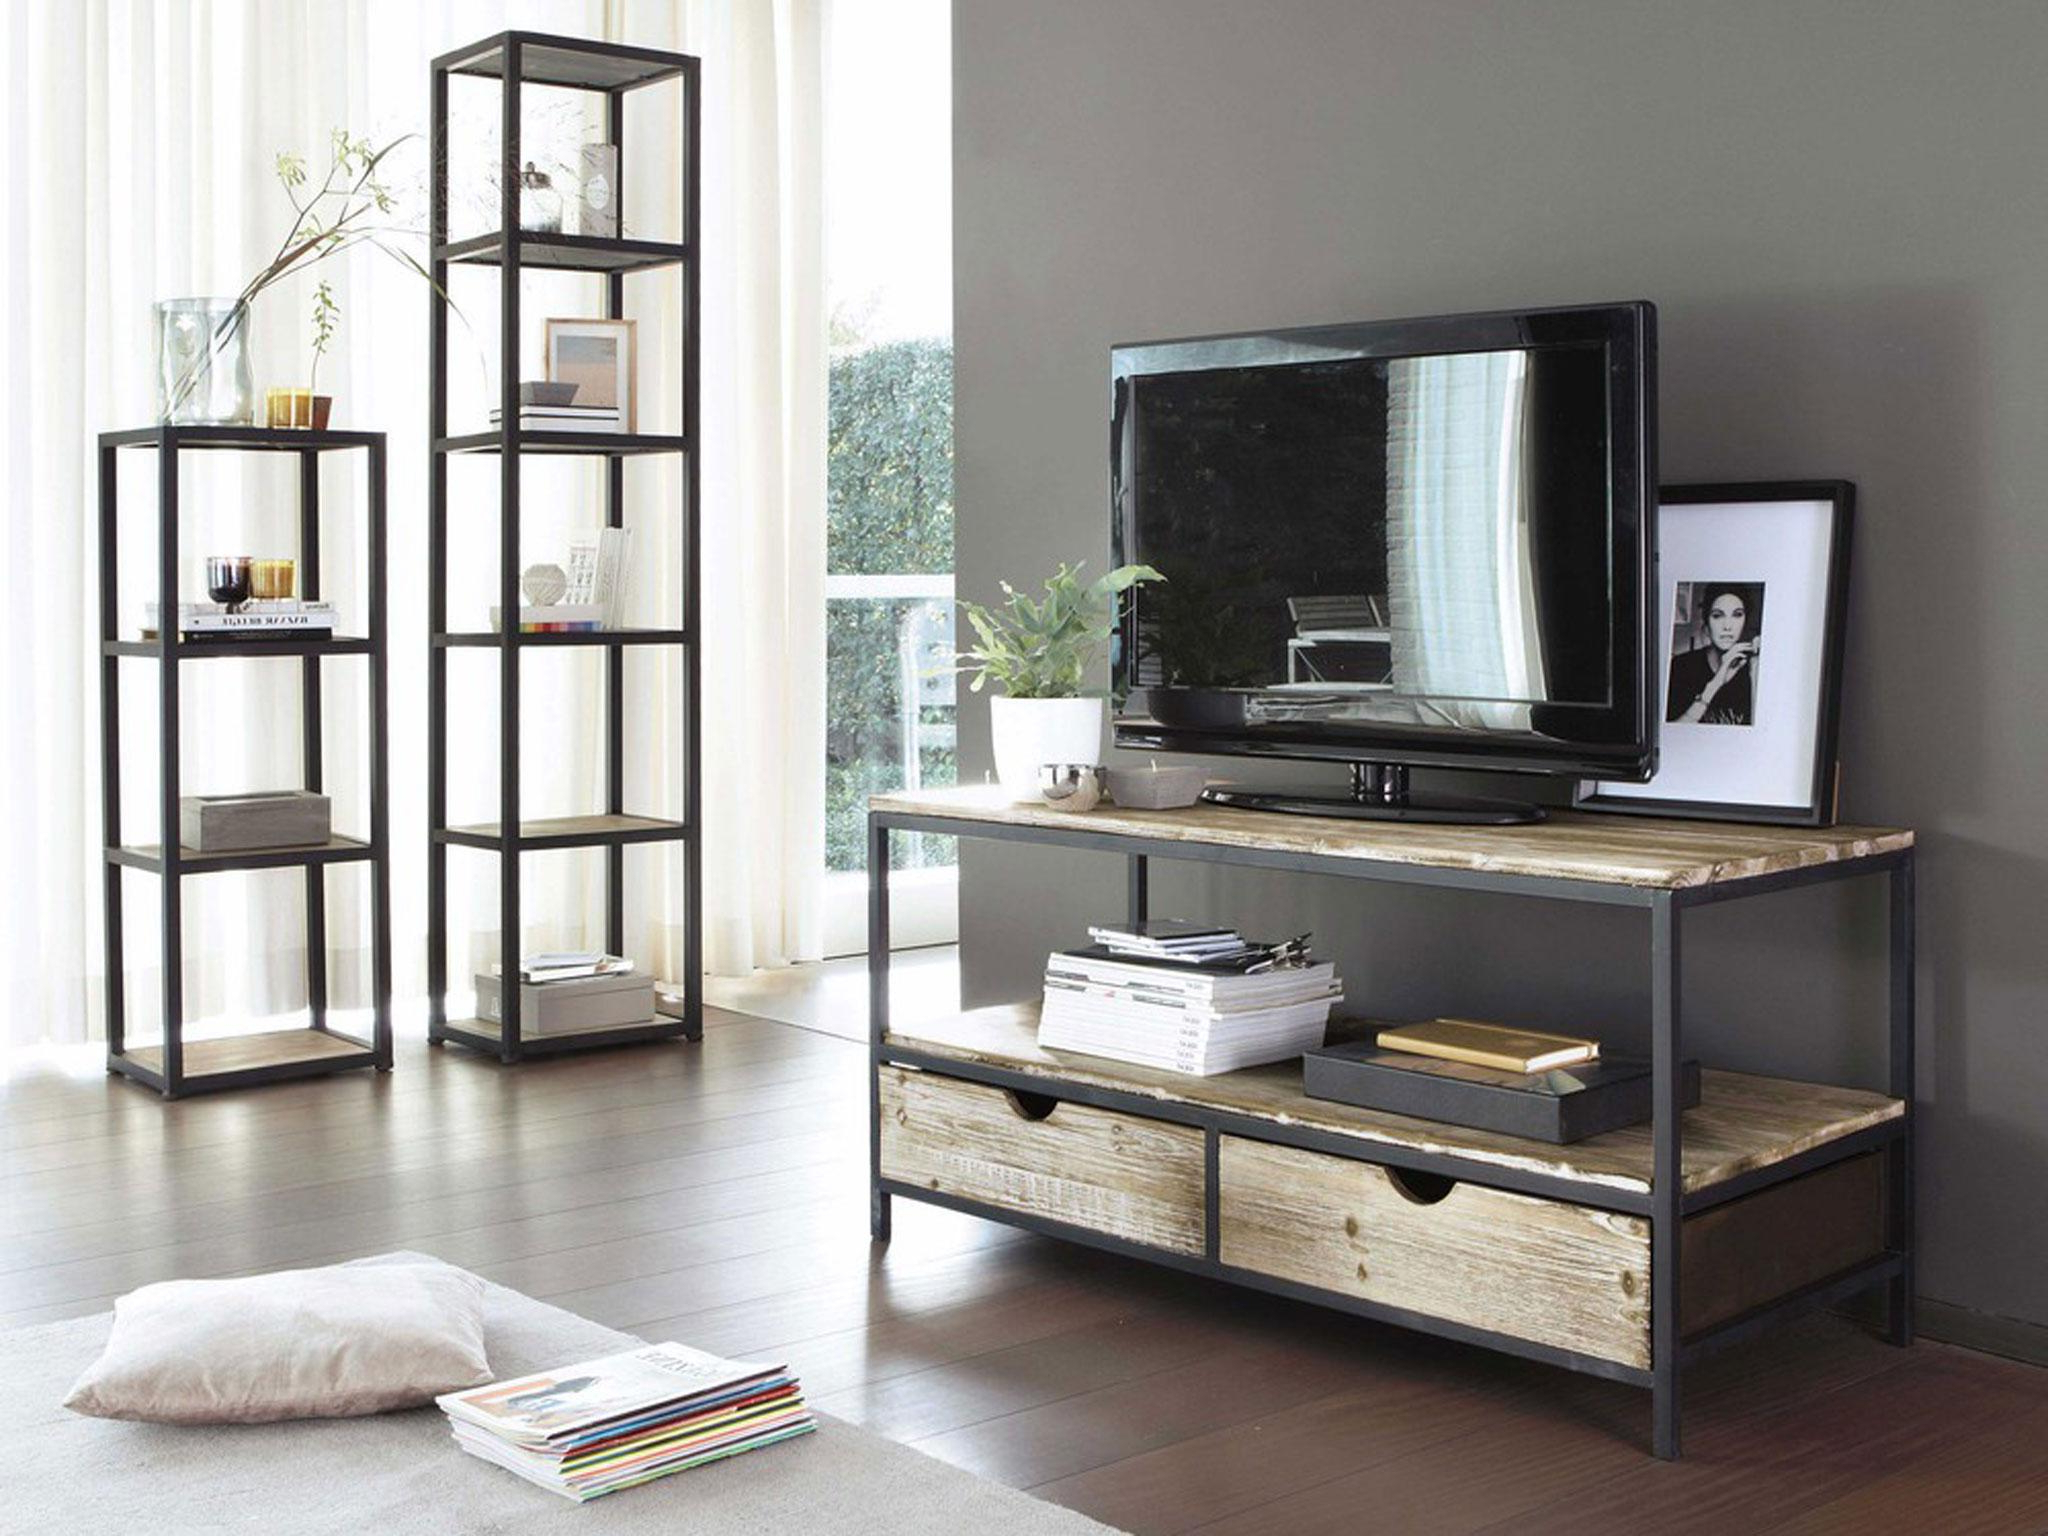 Single Shelf Tv Stands Intended For Well Liked 10 Best Tv Stands (Gallery 2 of 20)